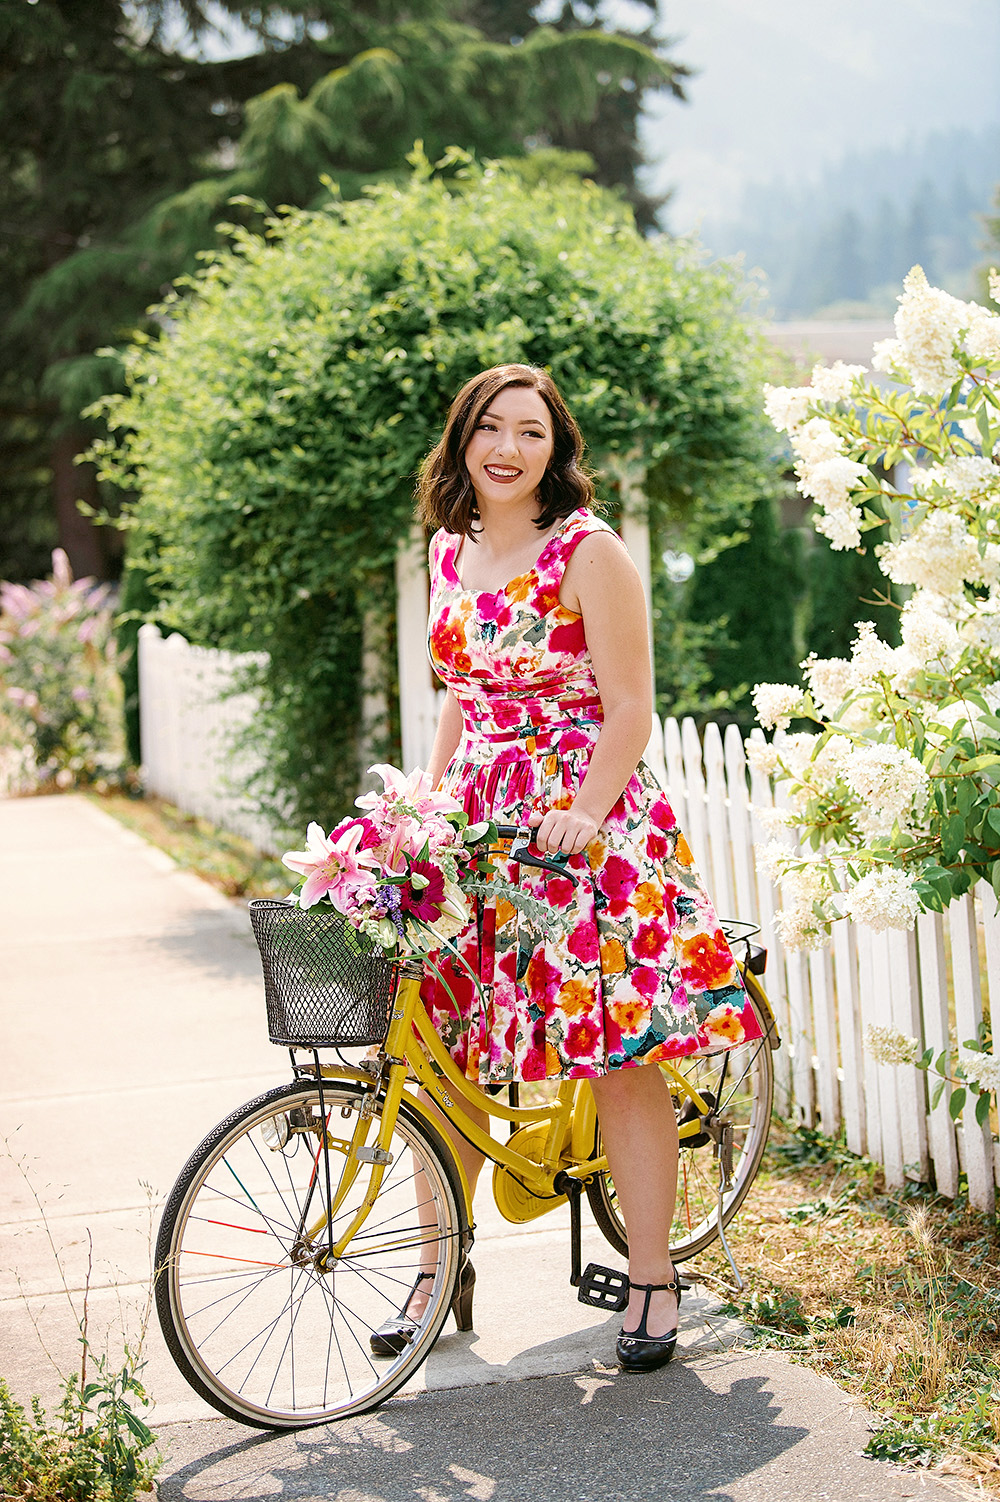 WEB_High School Senior on bike with flowers_Studio B Portraits_Dulin_0316.jpg